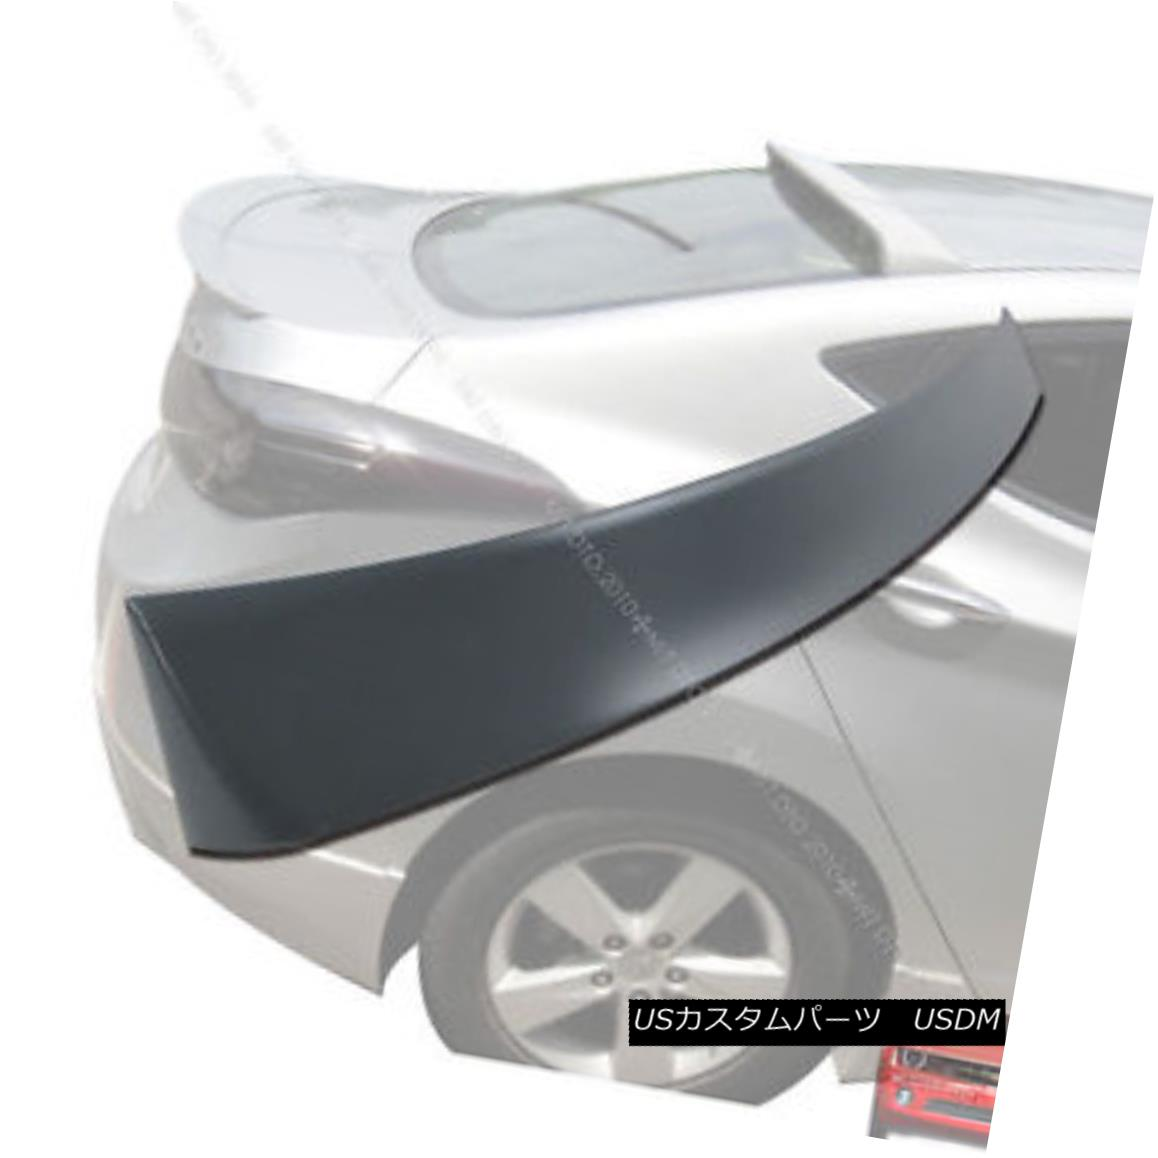 エアロパーツ Painted 2011-2015 For Hyundai MD Elantra Rear Roof Spoiler Wing NEW § Hyundai MD Elantraリアルーフスポイラーウイング用2011年?2015年塗装NEW